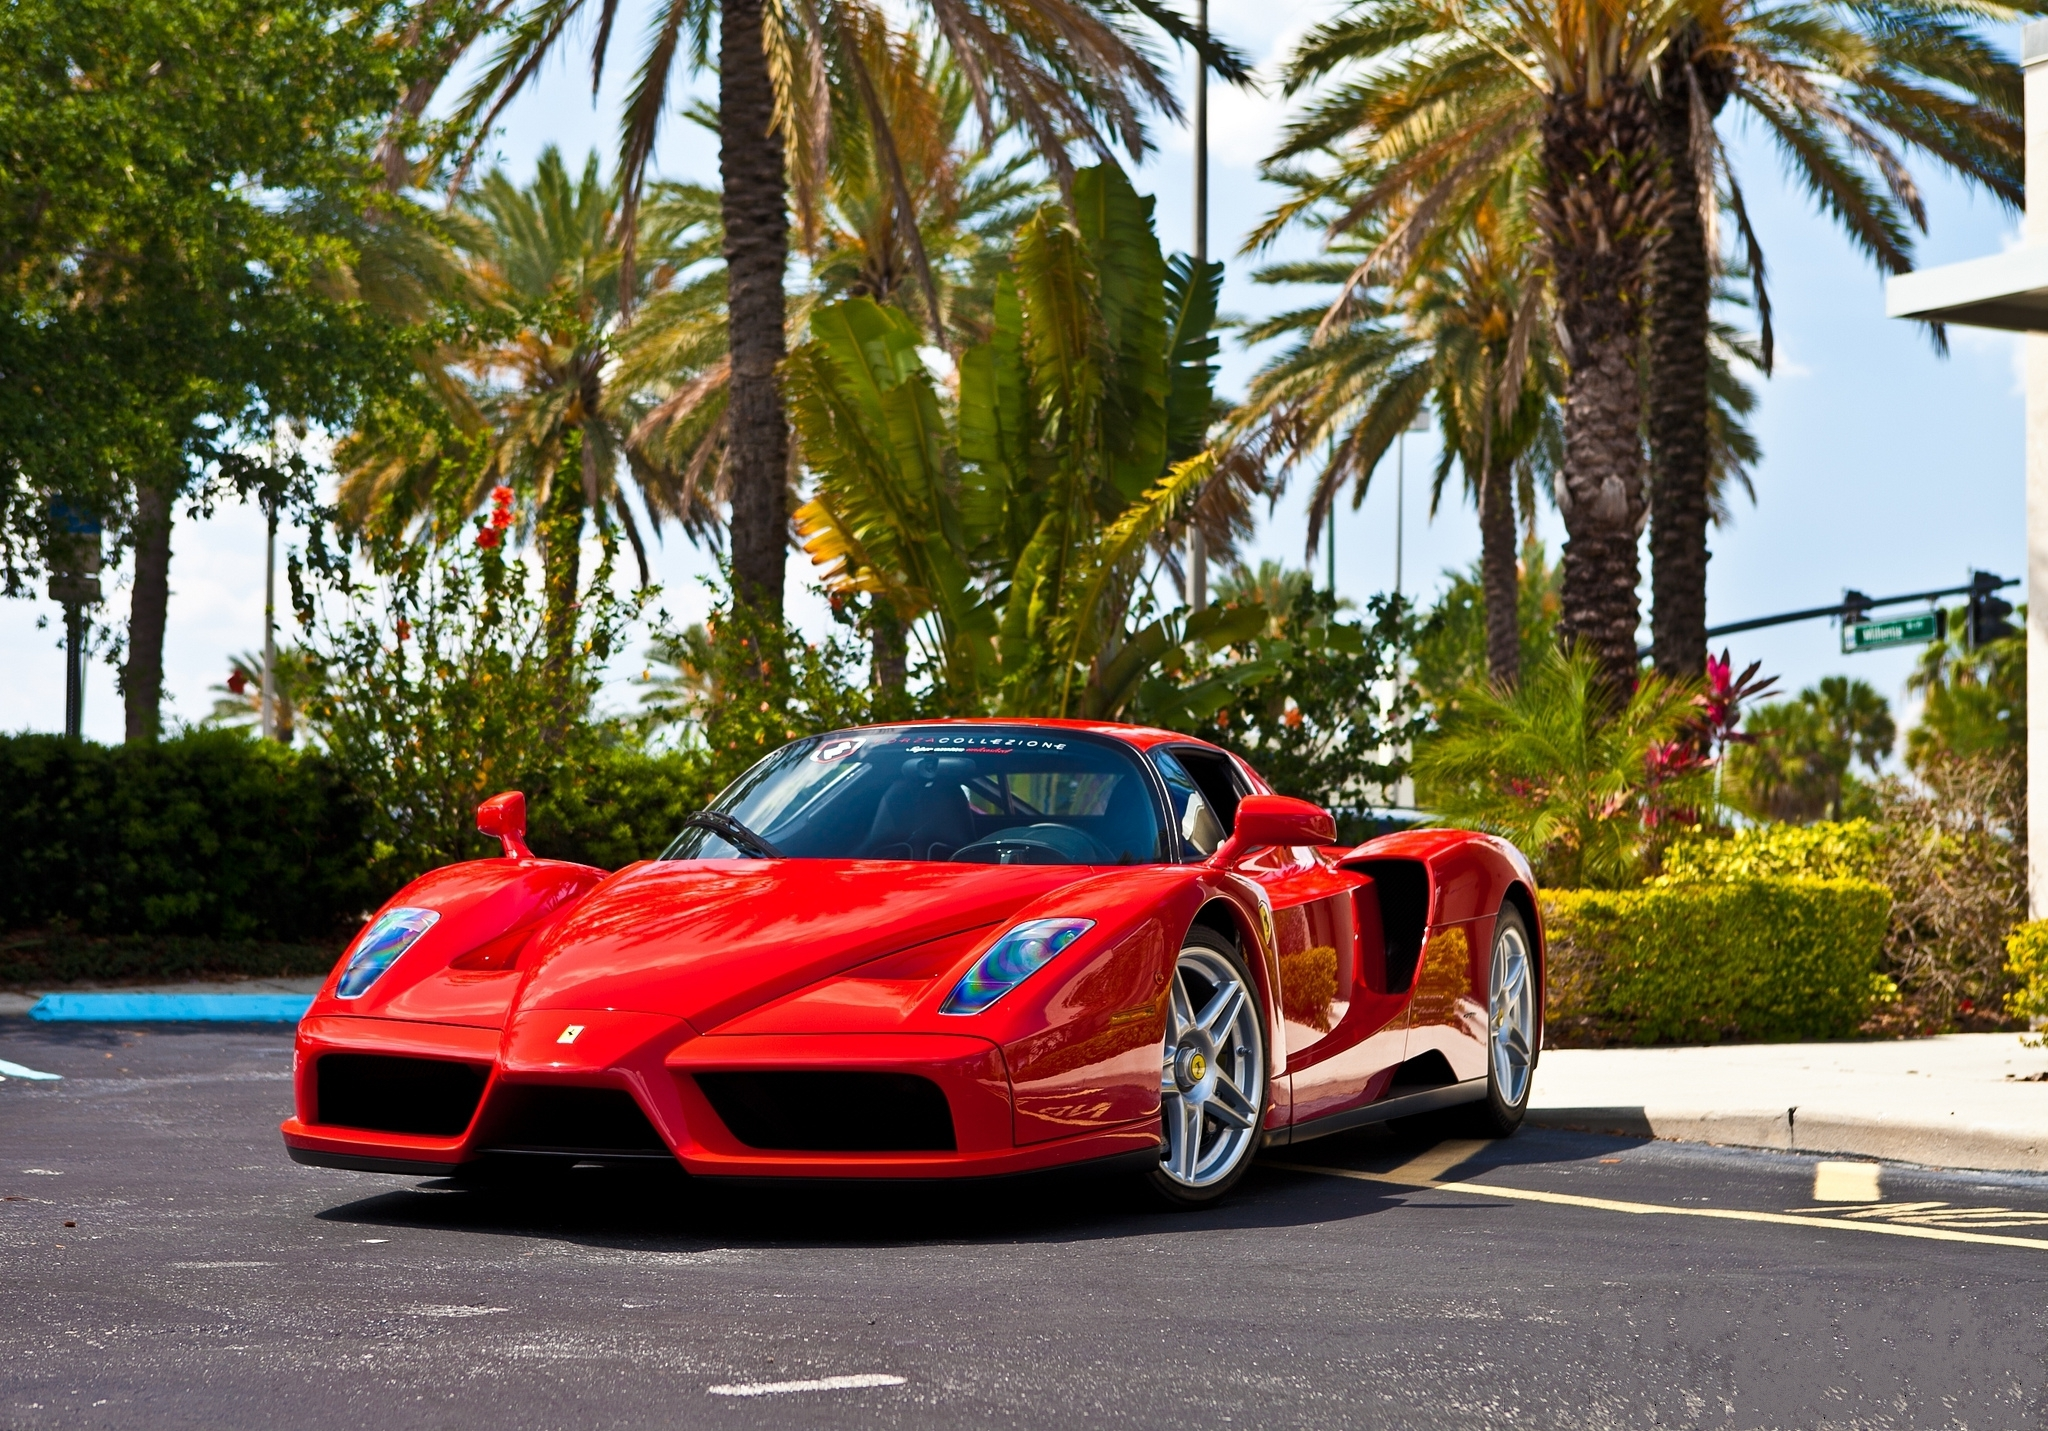 Download wallpaper with cars Ferrari with tags: High quality